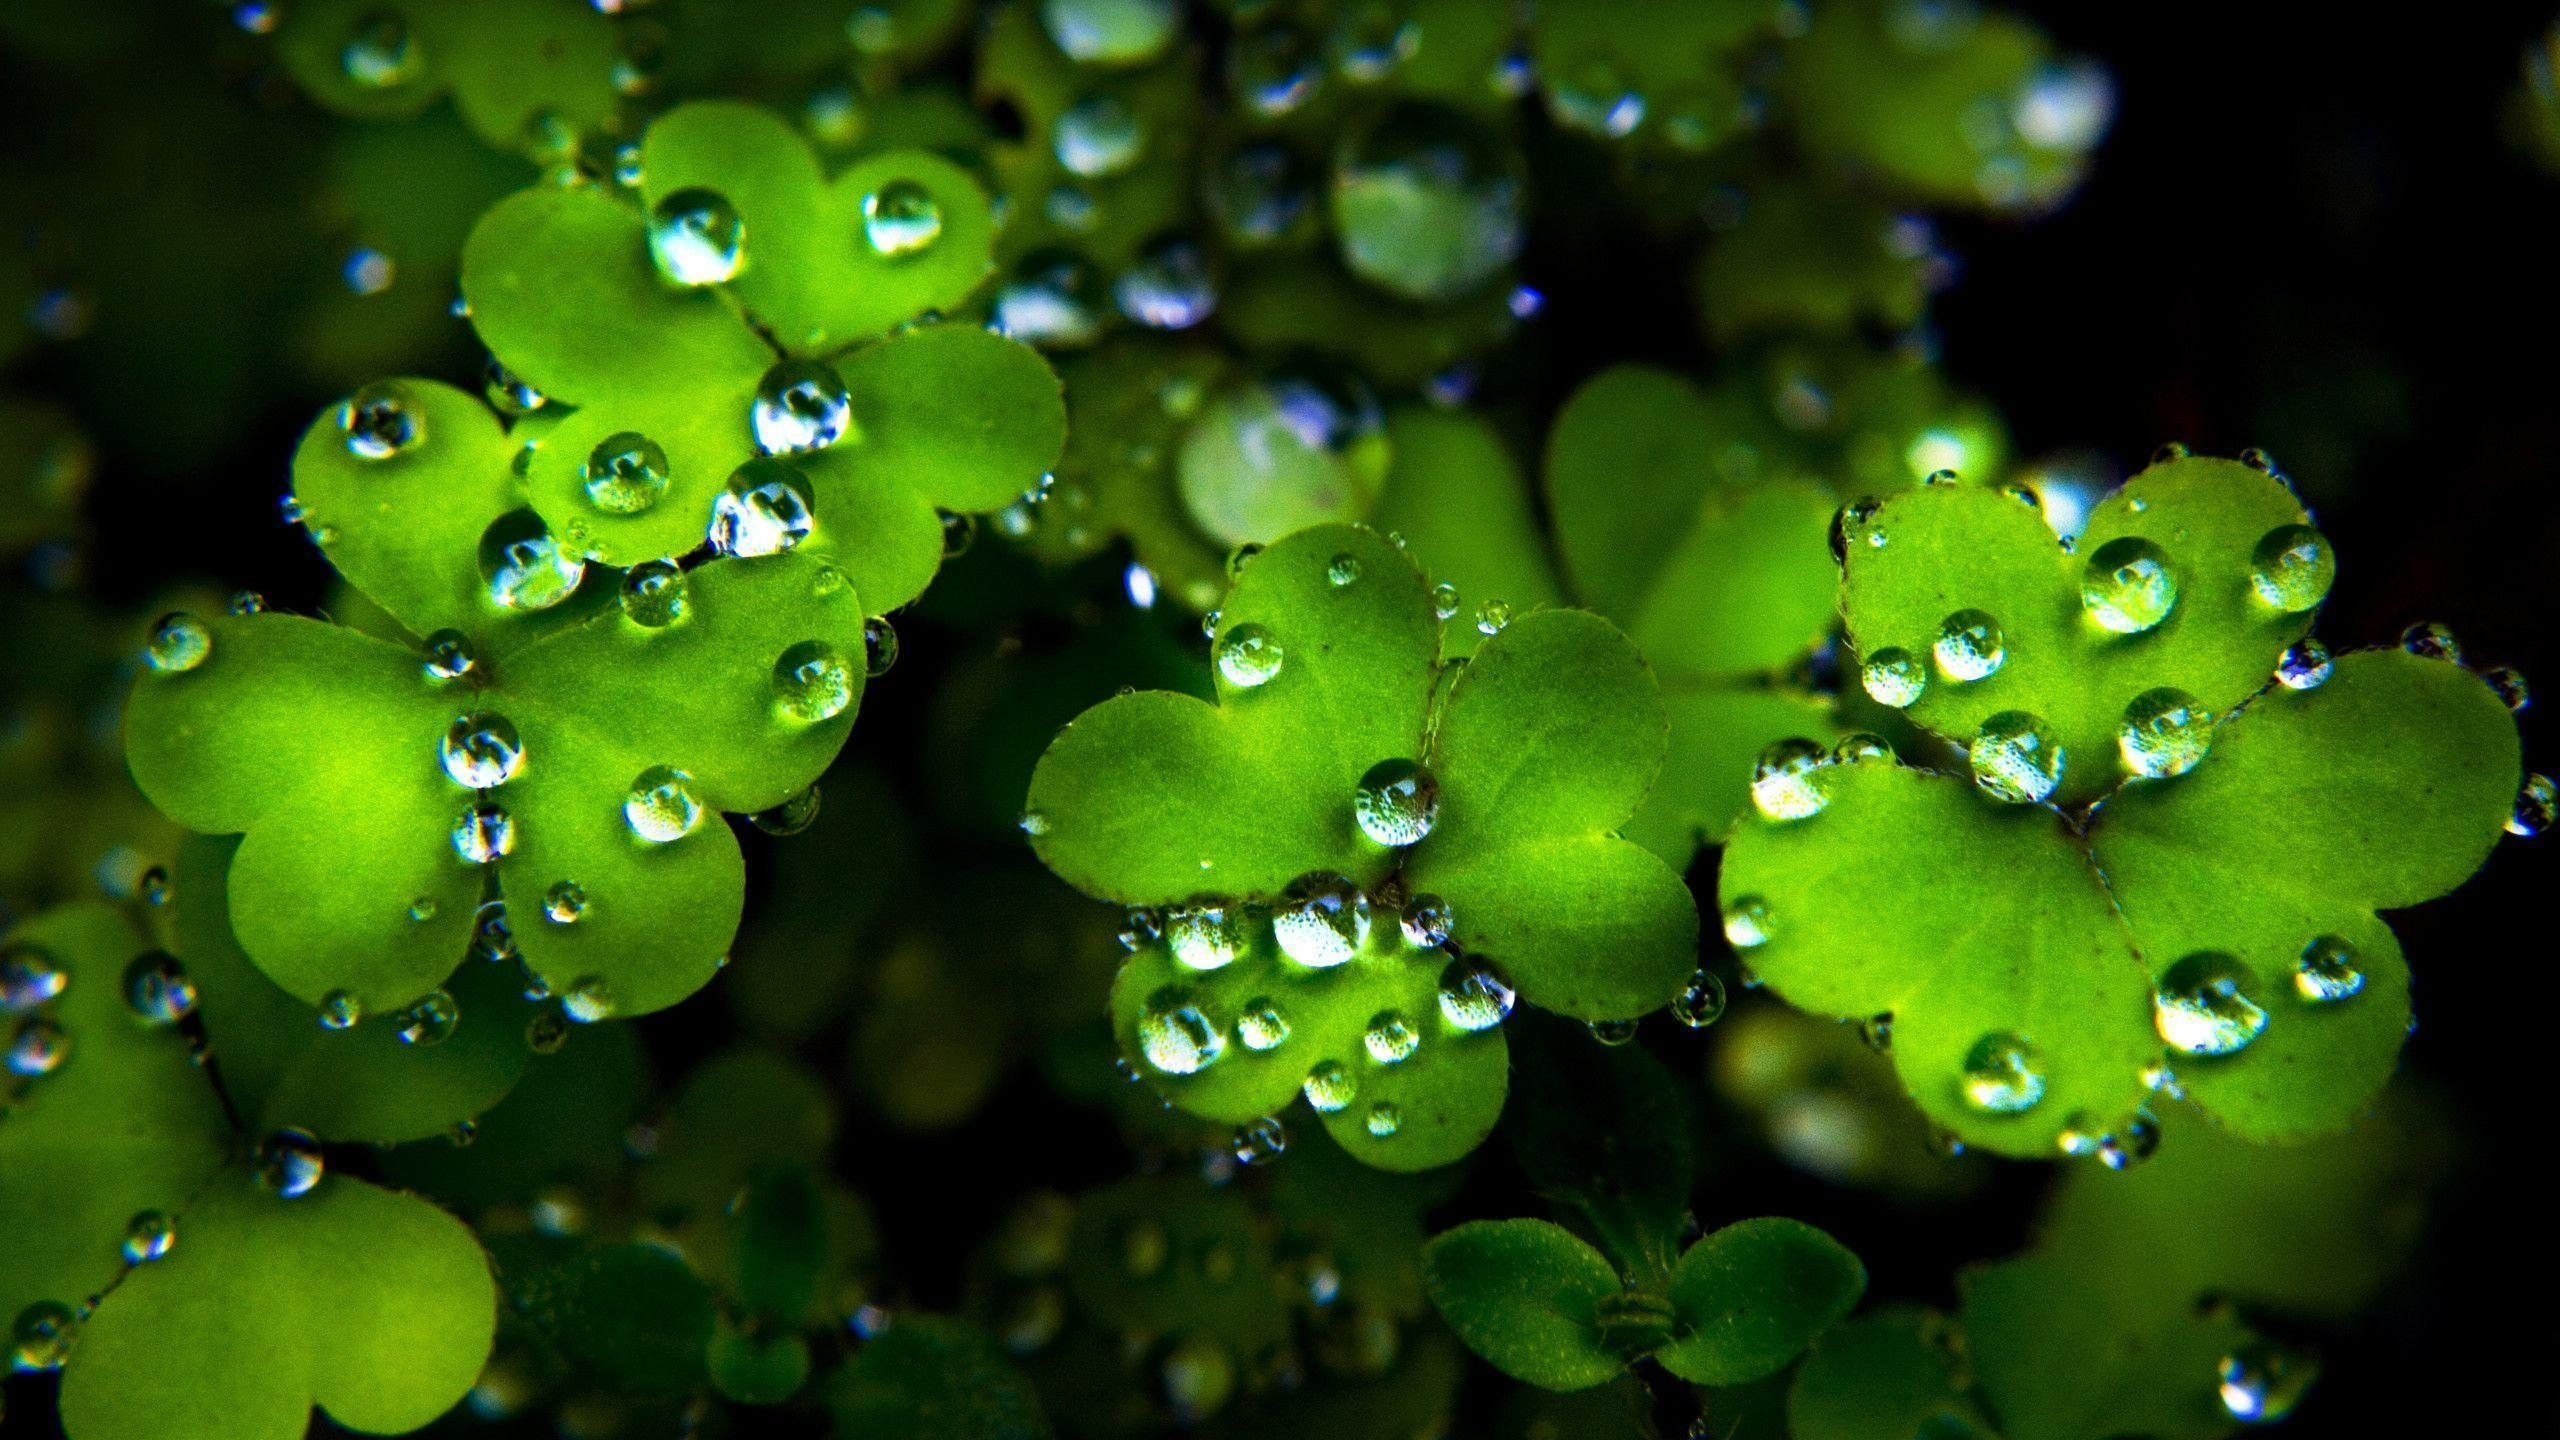 10 Best St Patricks Day Screensaver FULL HD 1920×1080 For PC Background